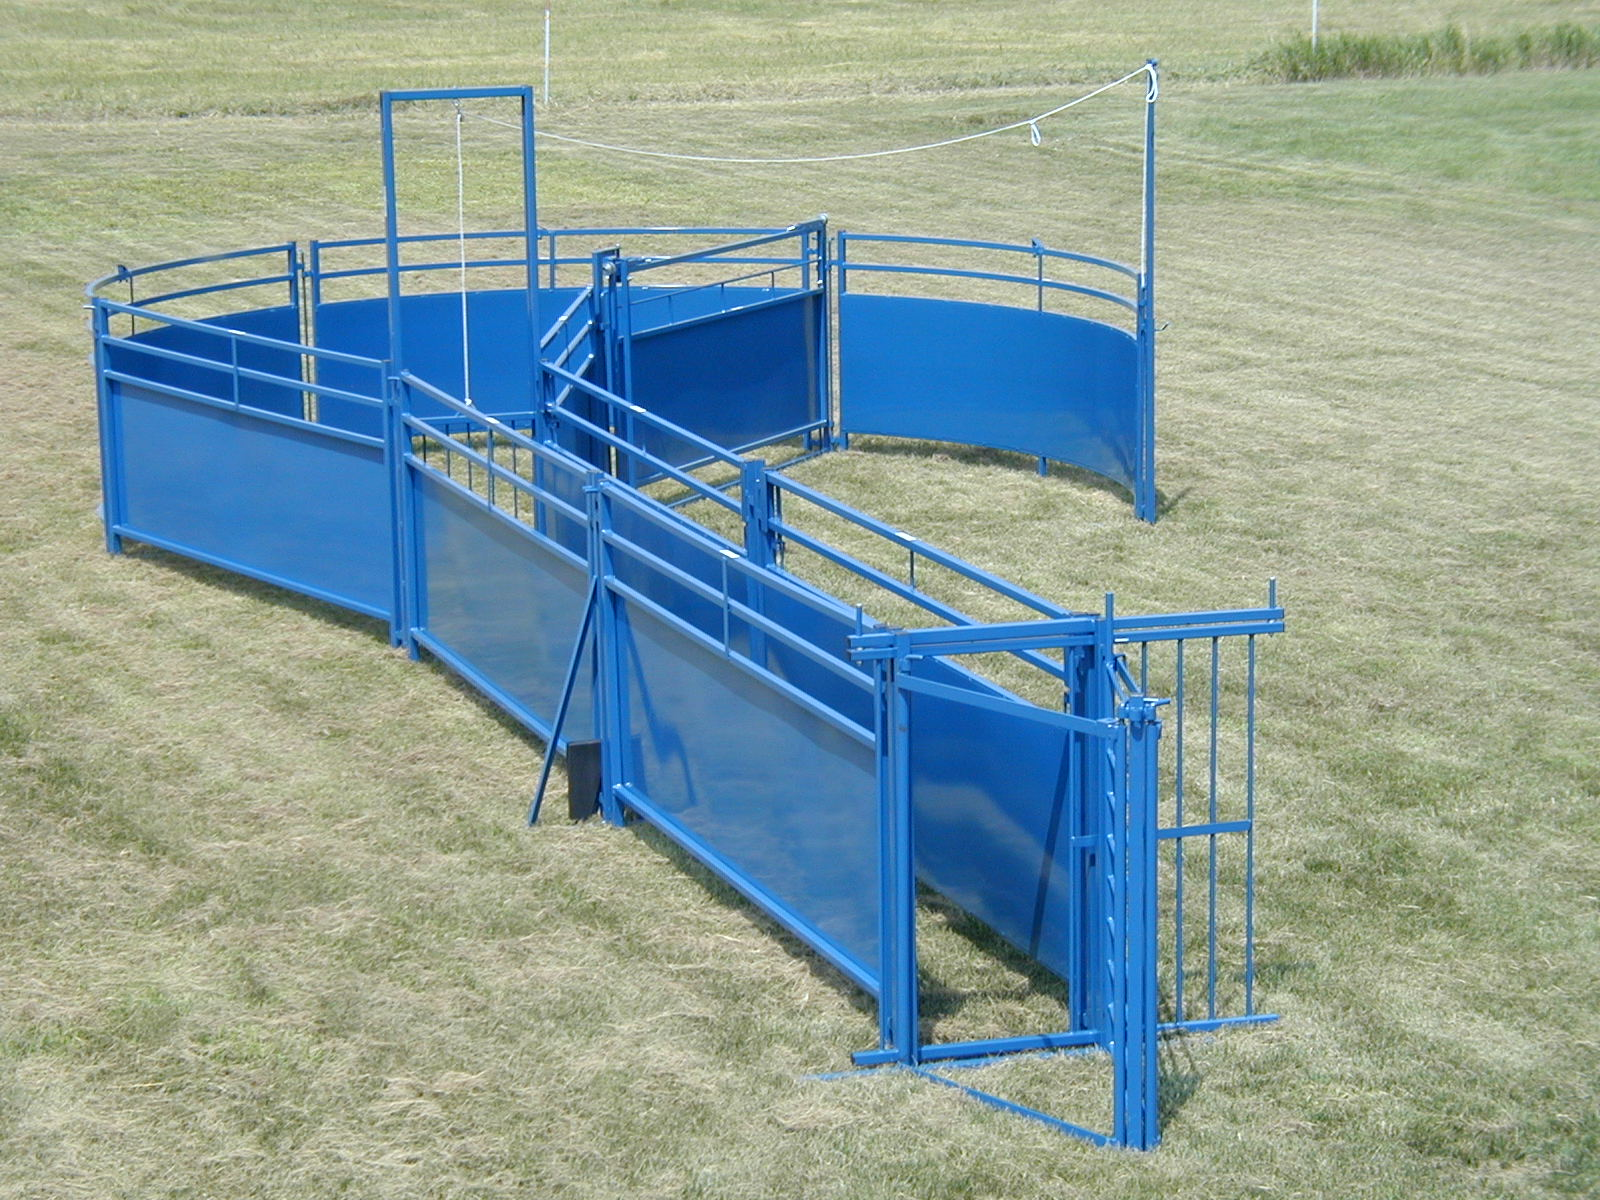 1 Man Livestock Systems http://www.threewillowsranch.com/corral_systems.html